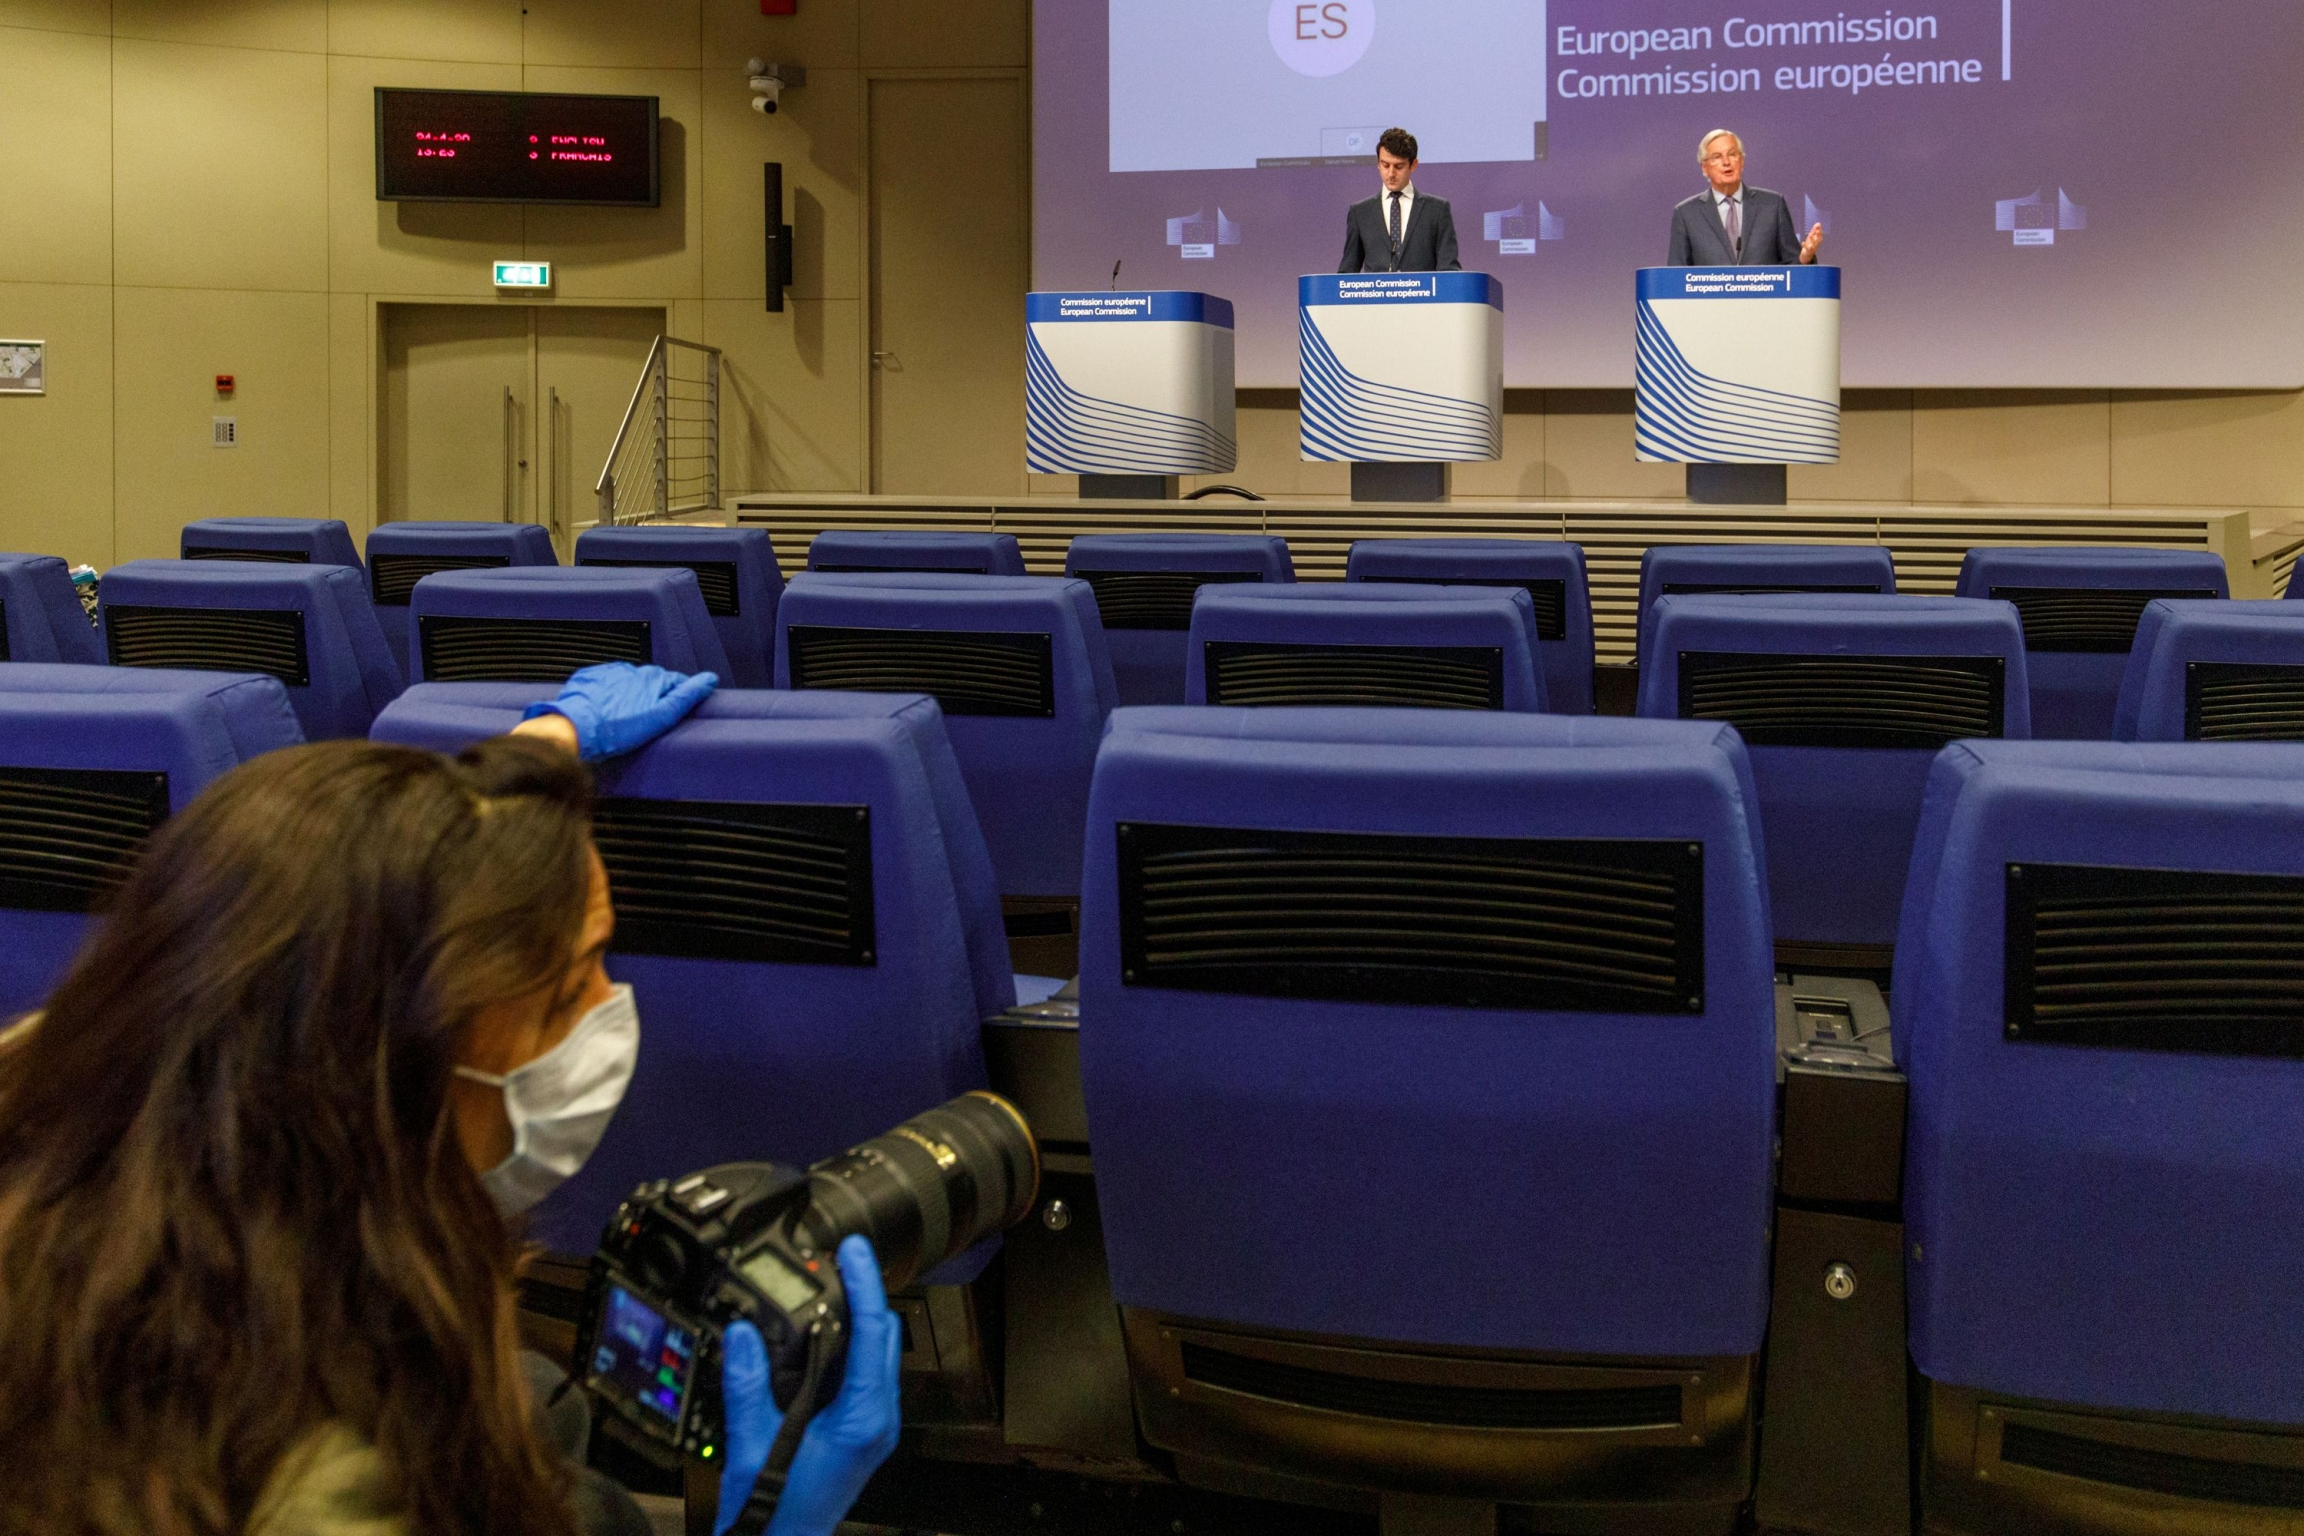 EU's Brexit negotiator Michel Barnier gives a news conference after Brexit negotiations, as a photographer wearing a mass passes by in the foreground, in Brussels, Belgium, on April 24, 2020.